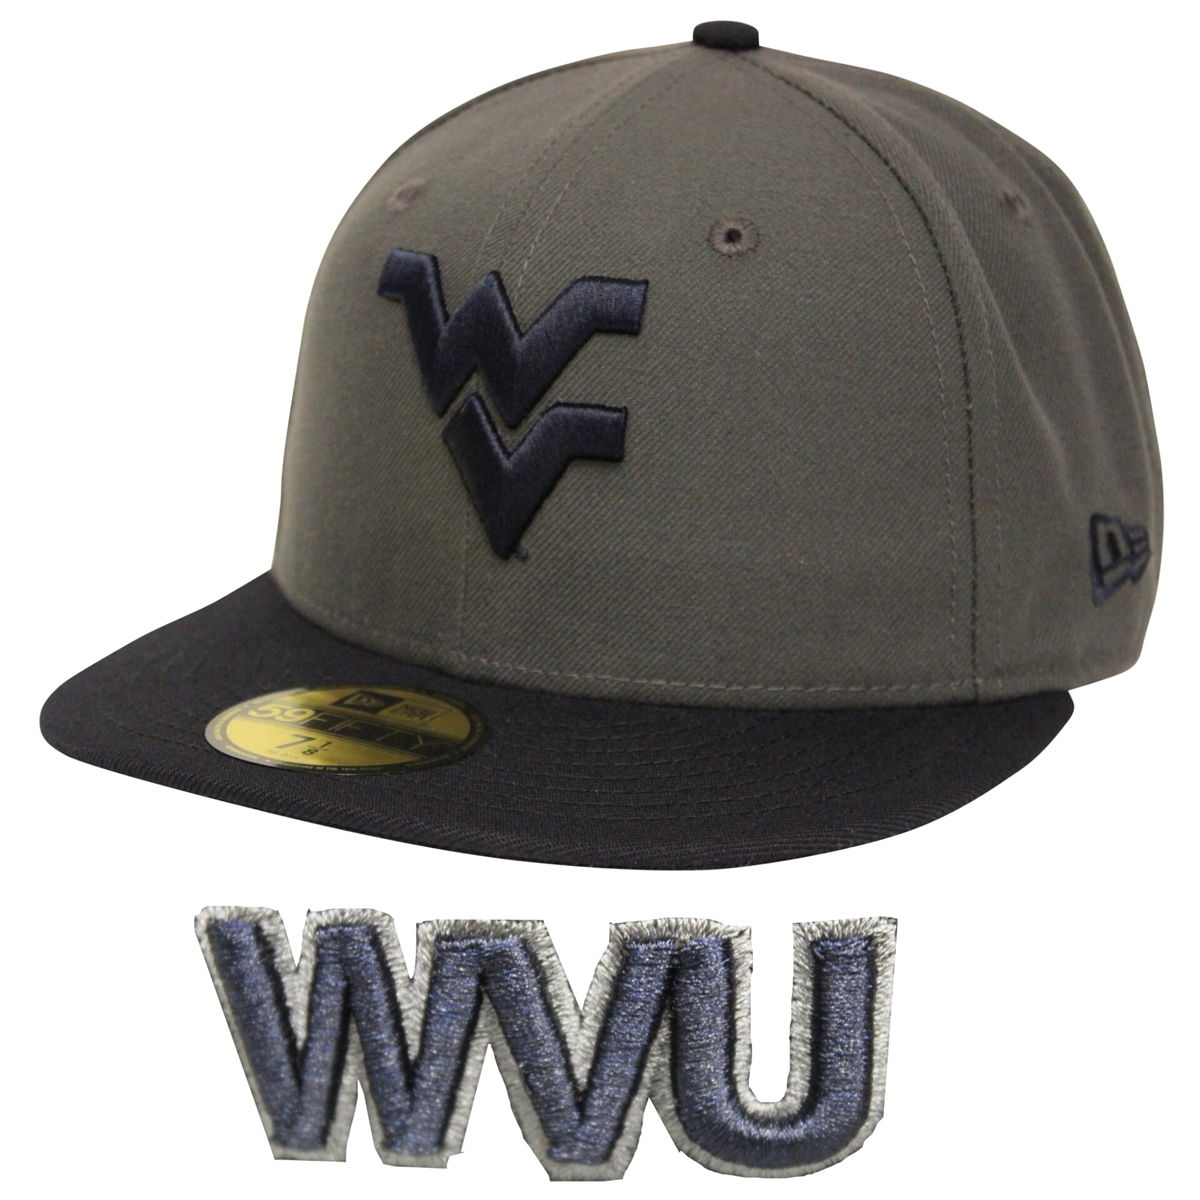 deac2fb65977a New Era 59Fifty West Virginia Mountaineers WVU Fitted Cap